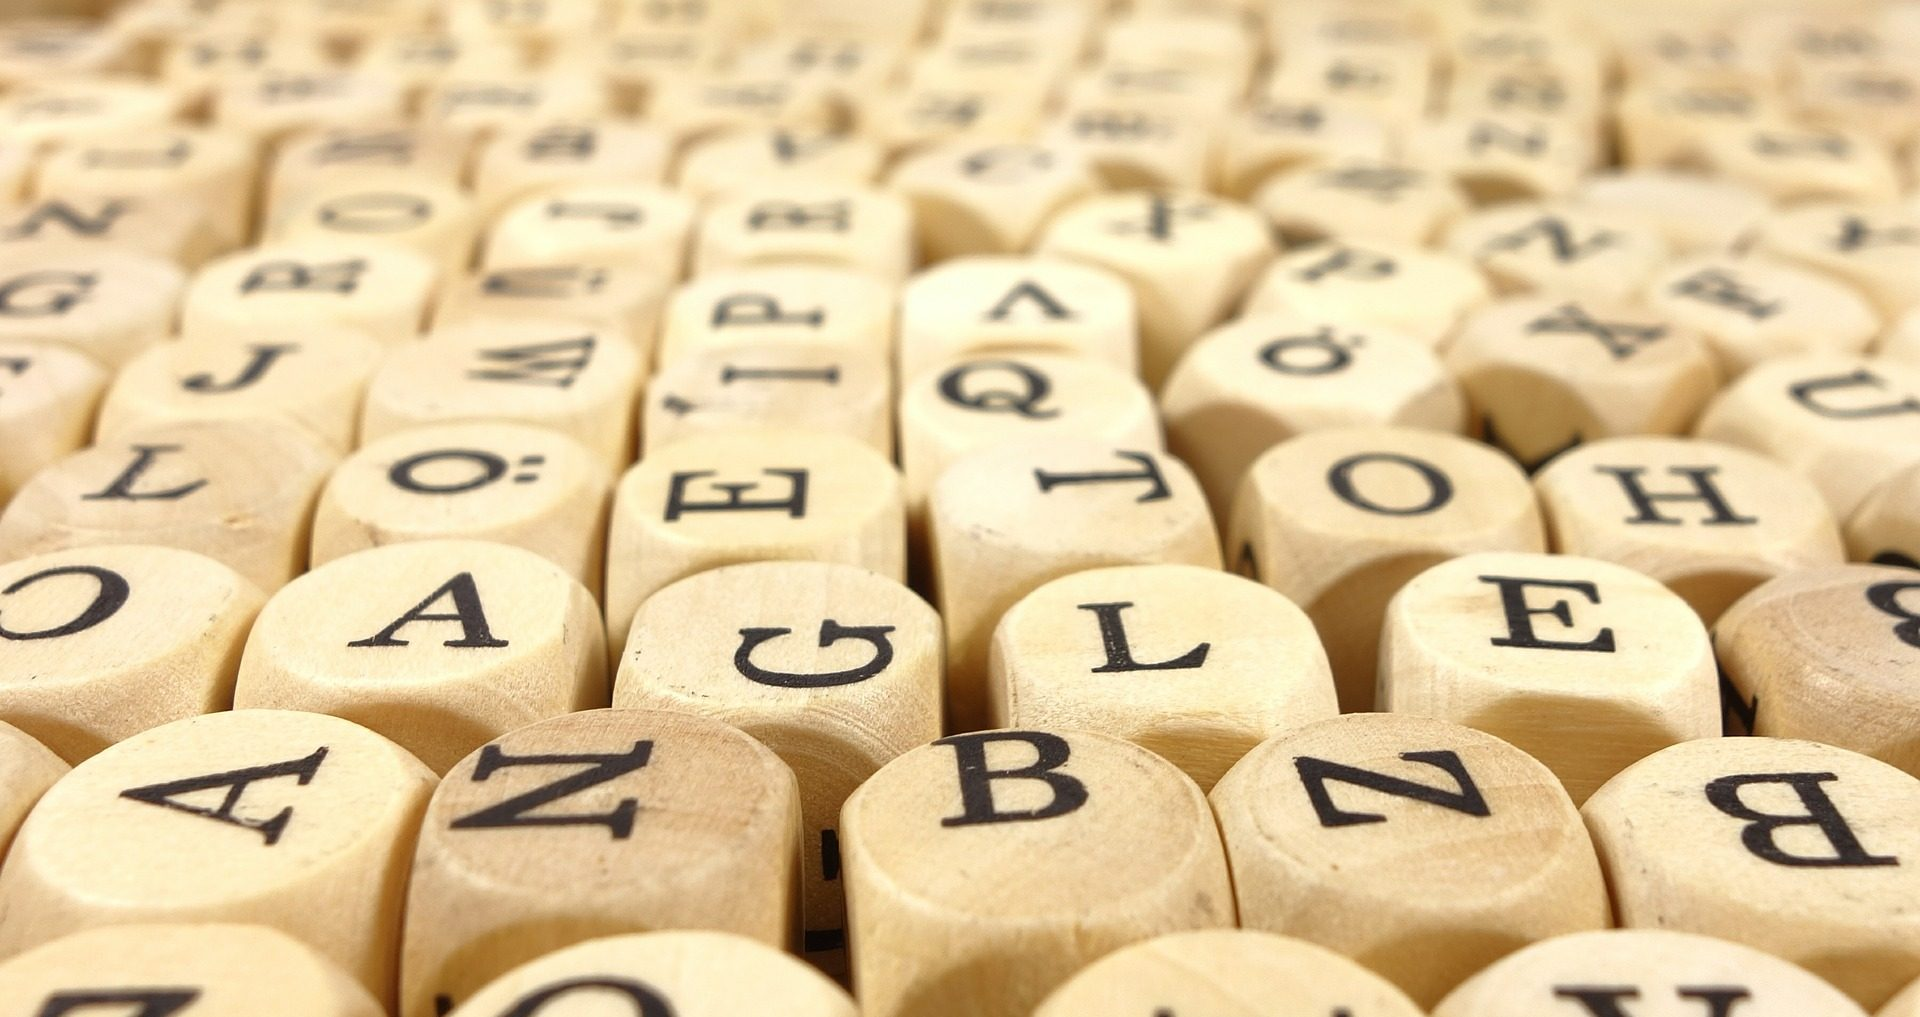 Can you guess all of these letters?